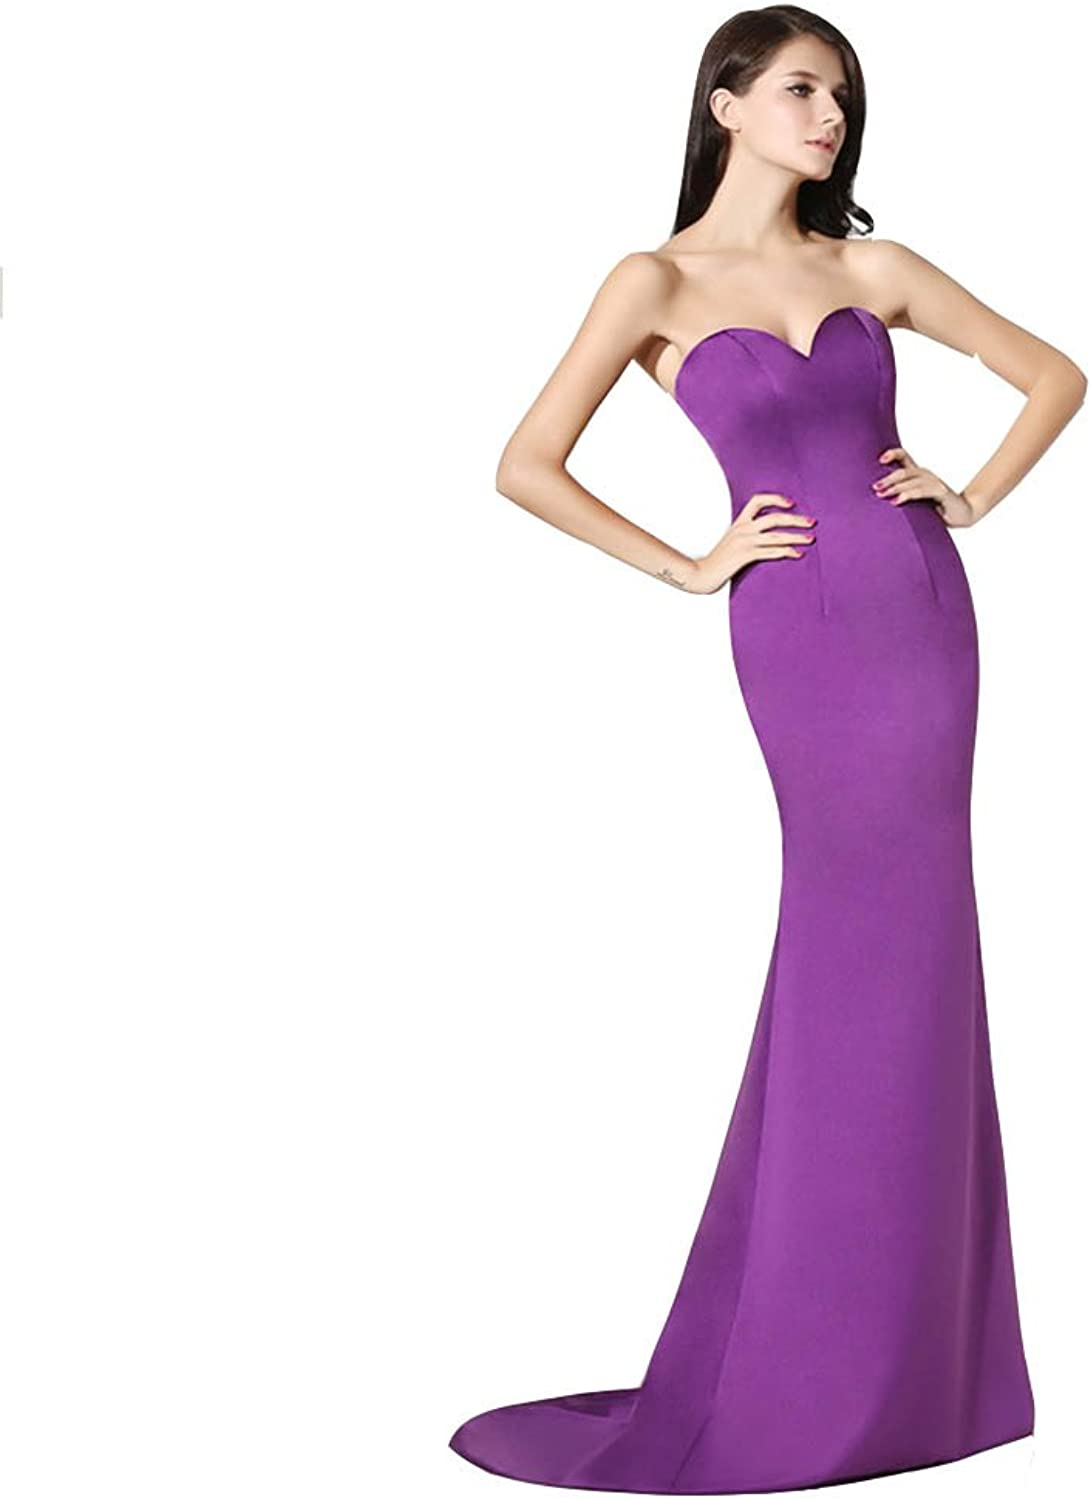 Ai maria Women's Sexy Bust Out Mermaid Long Ball Gown With Concise Style